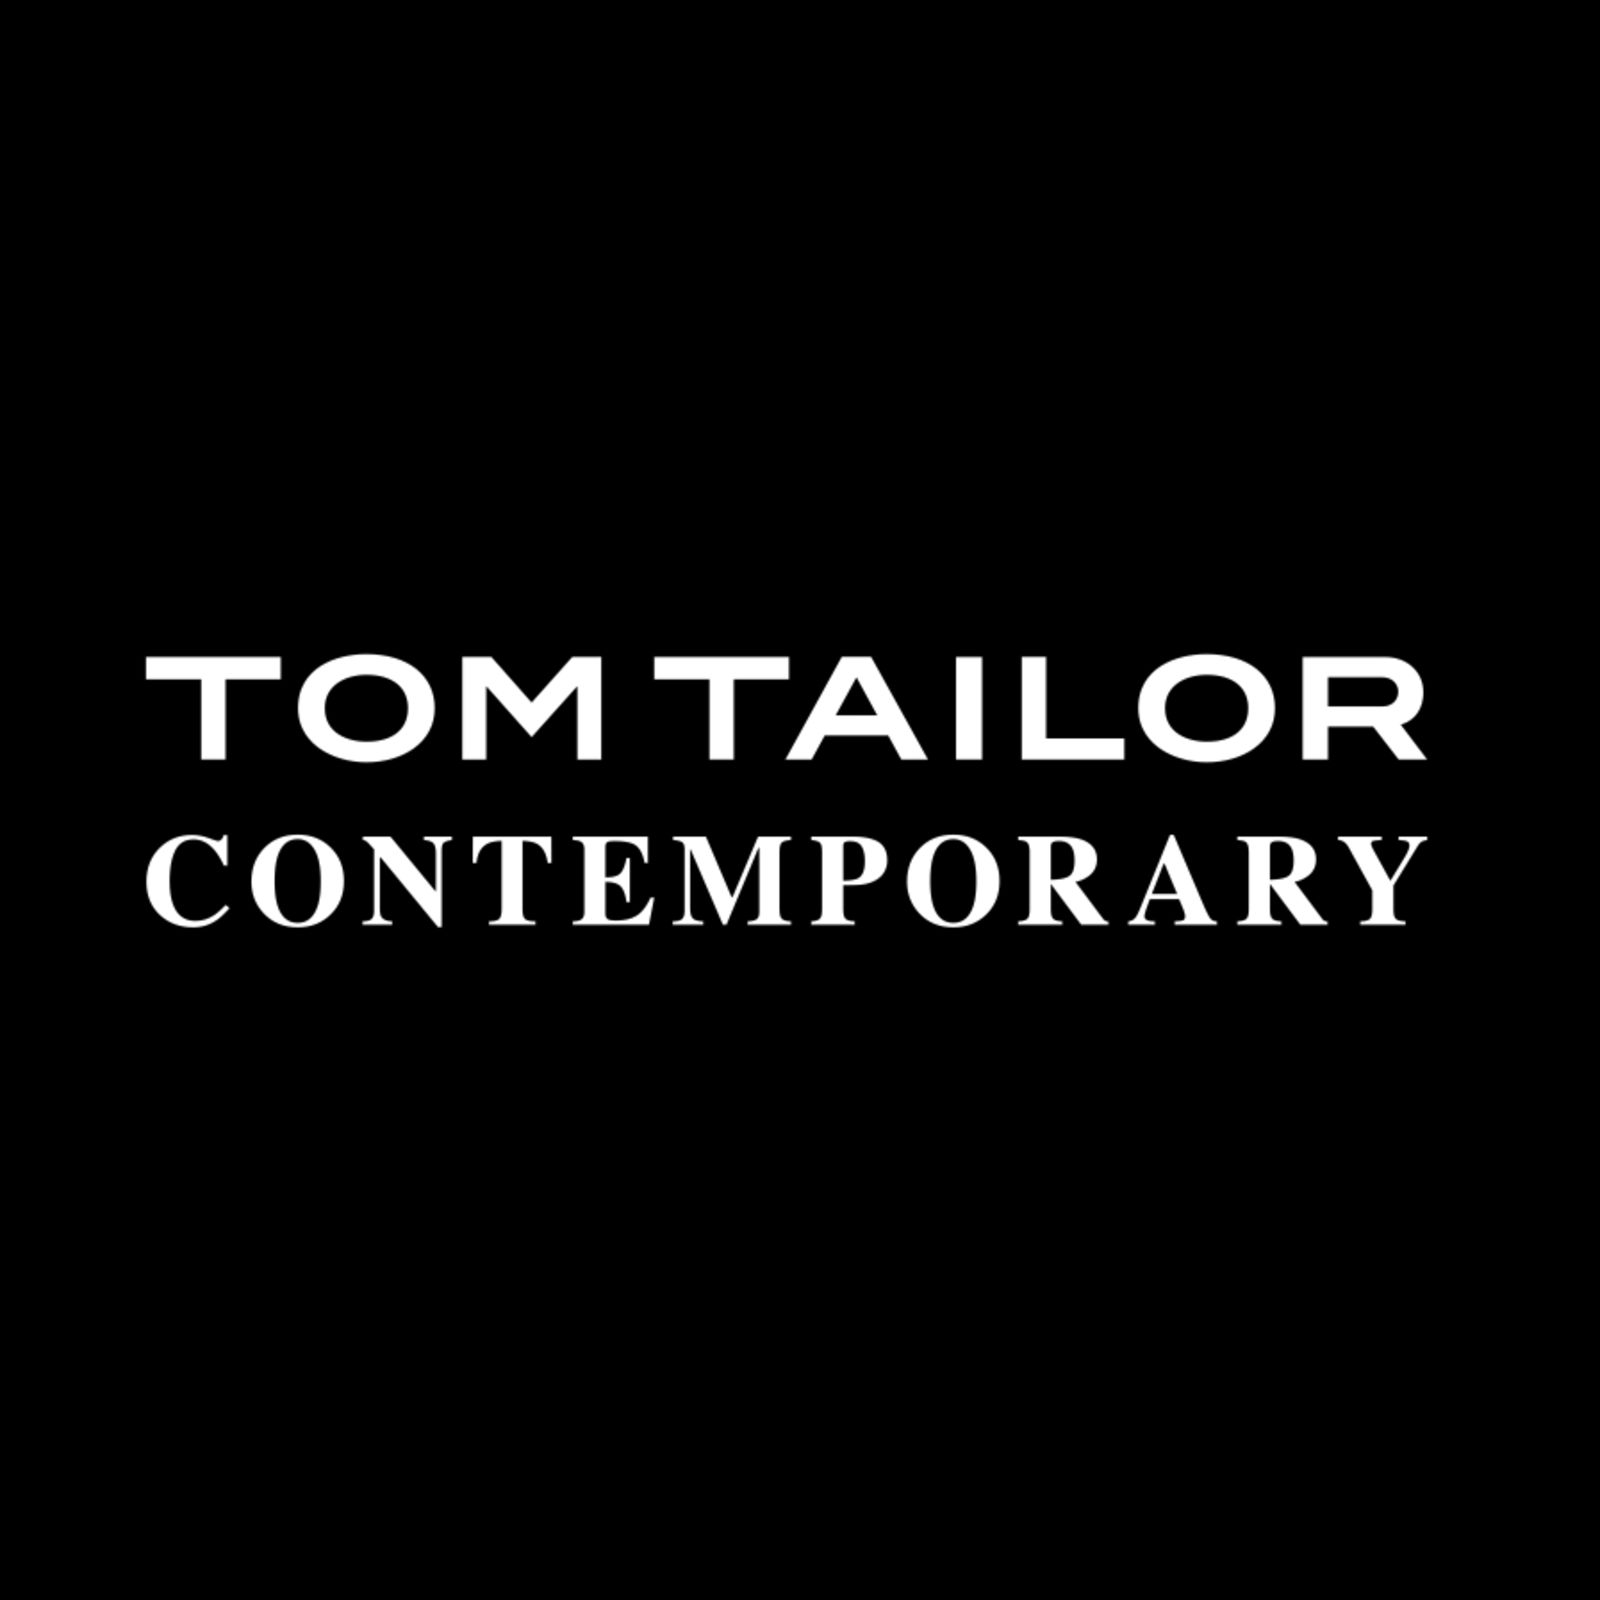 TOM TAILOR Contemporary (Image 1)